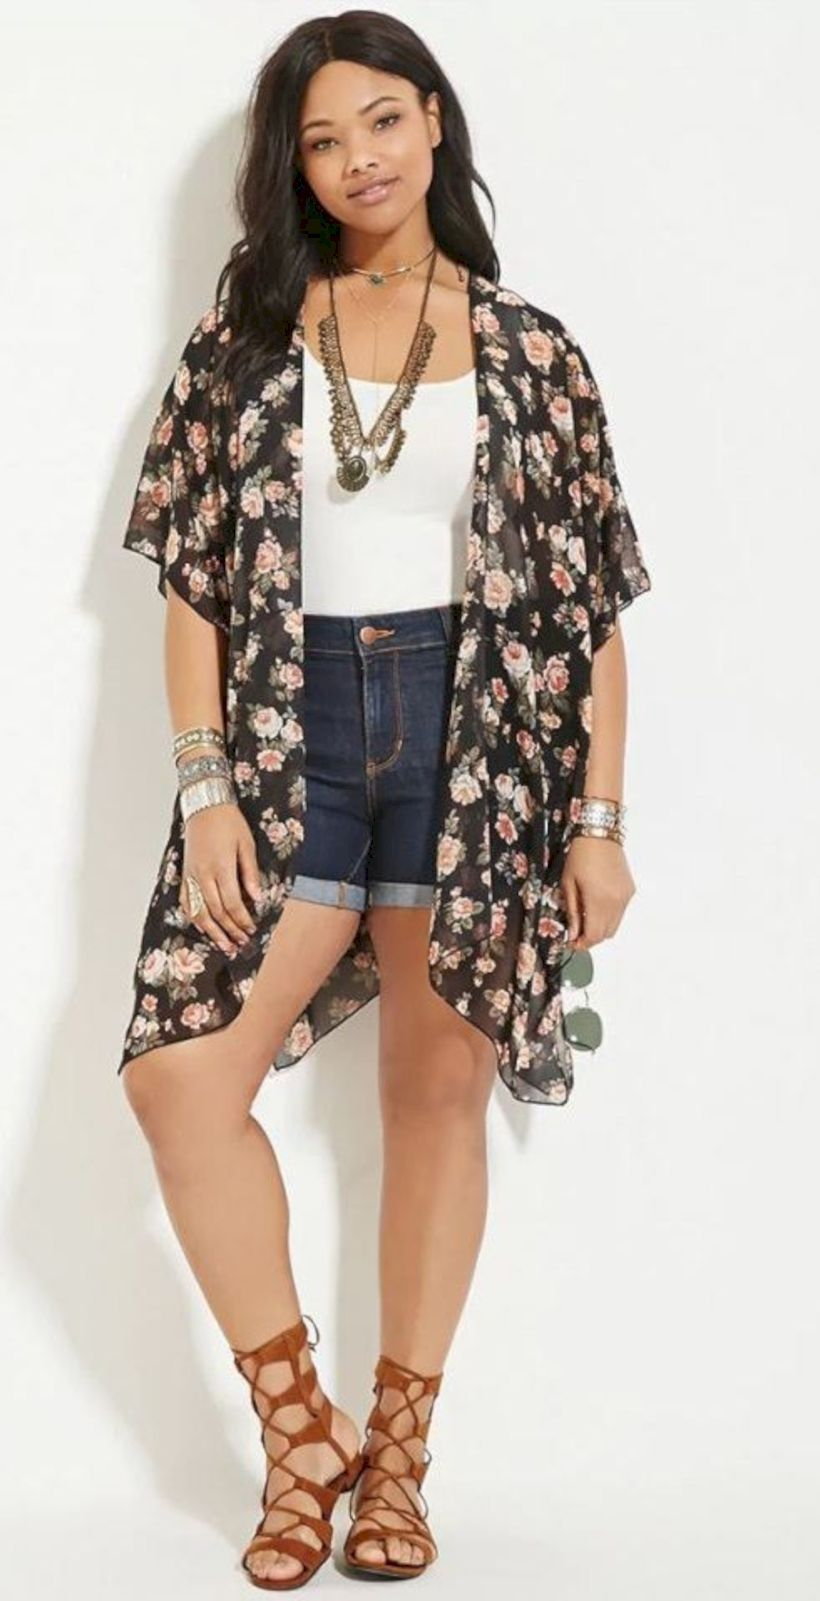 56 Trending Short Outfits Ideas to Copy This Fall